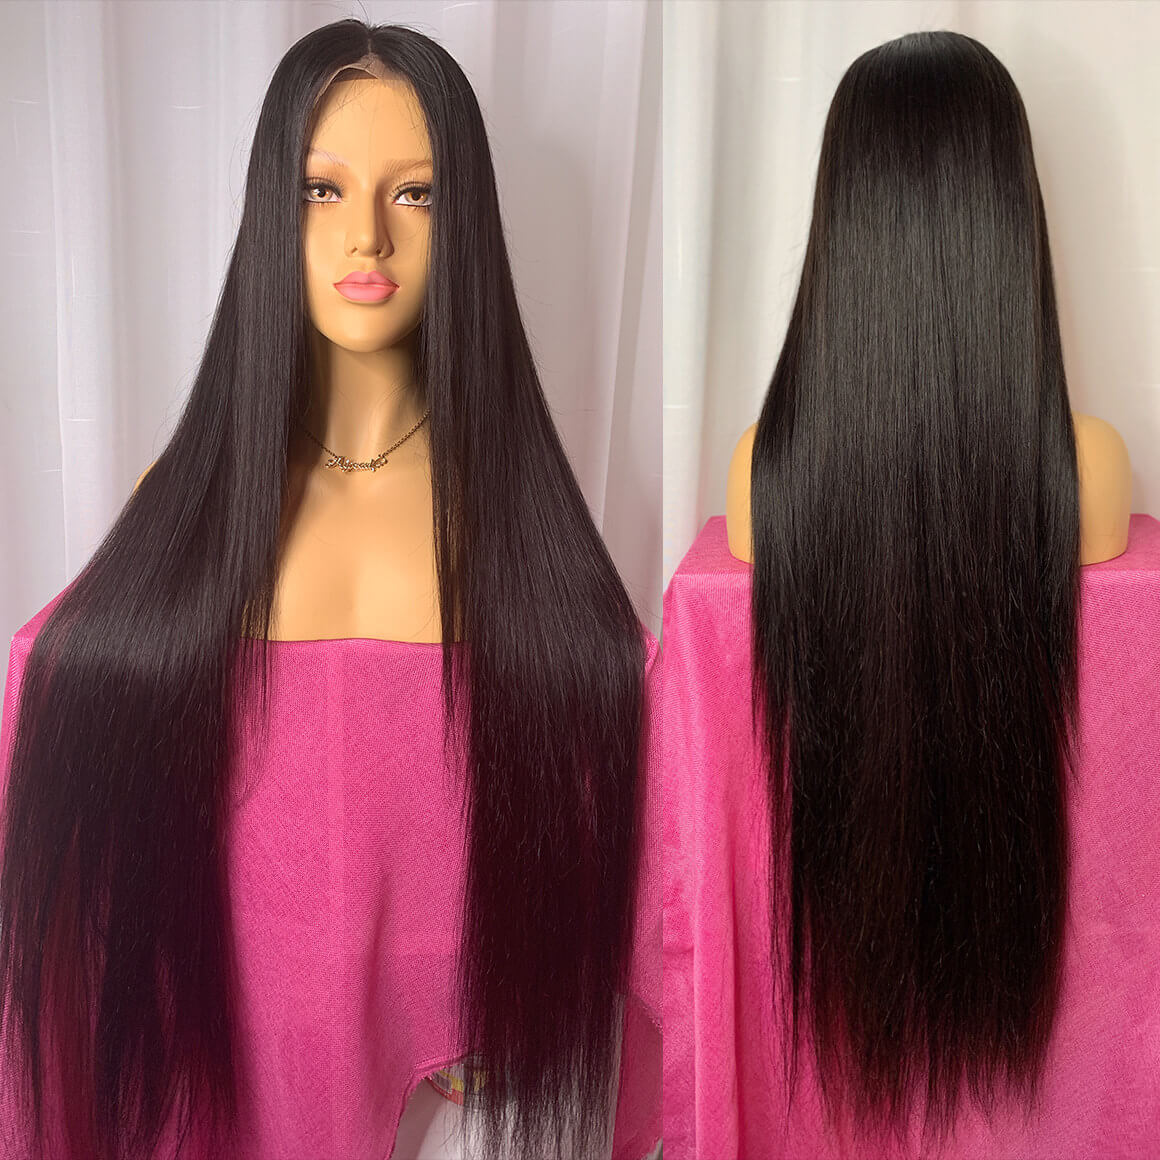 36inch long straight wig